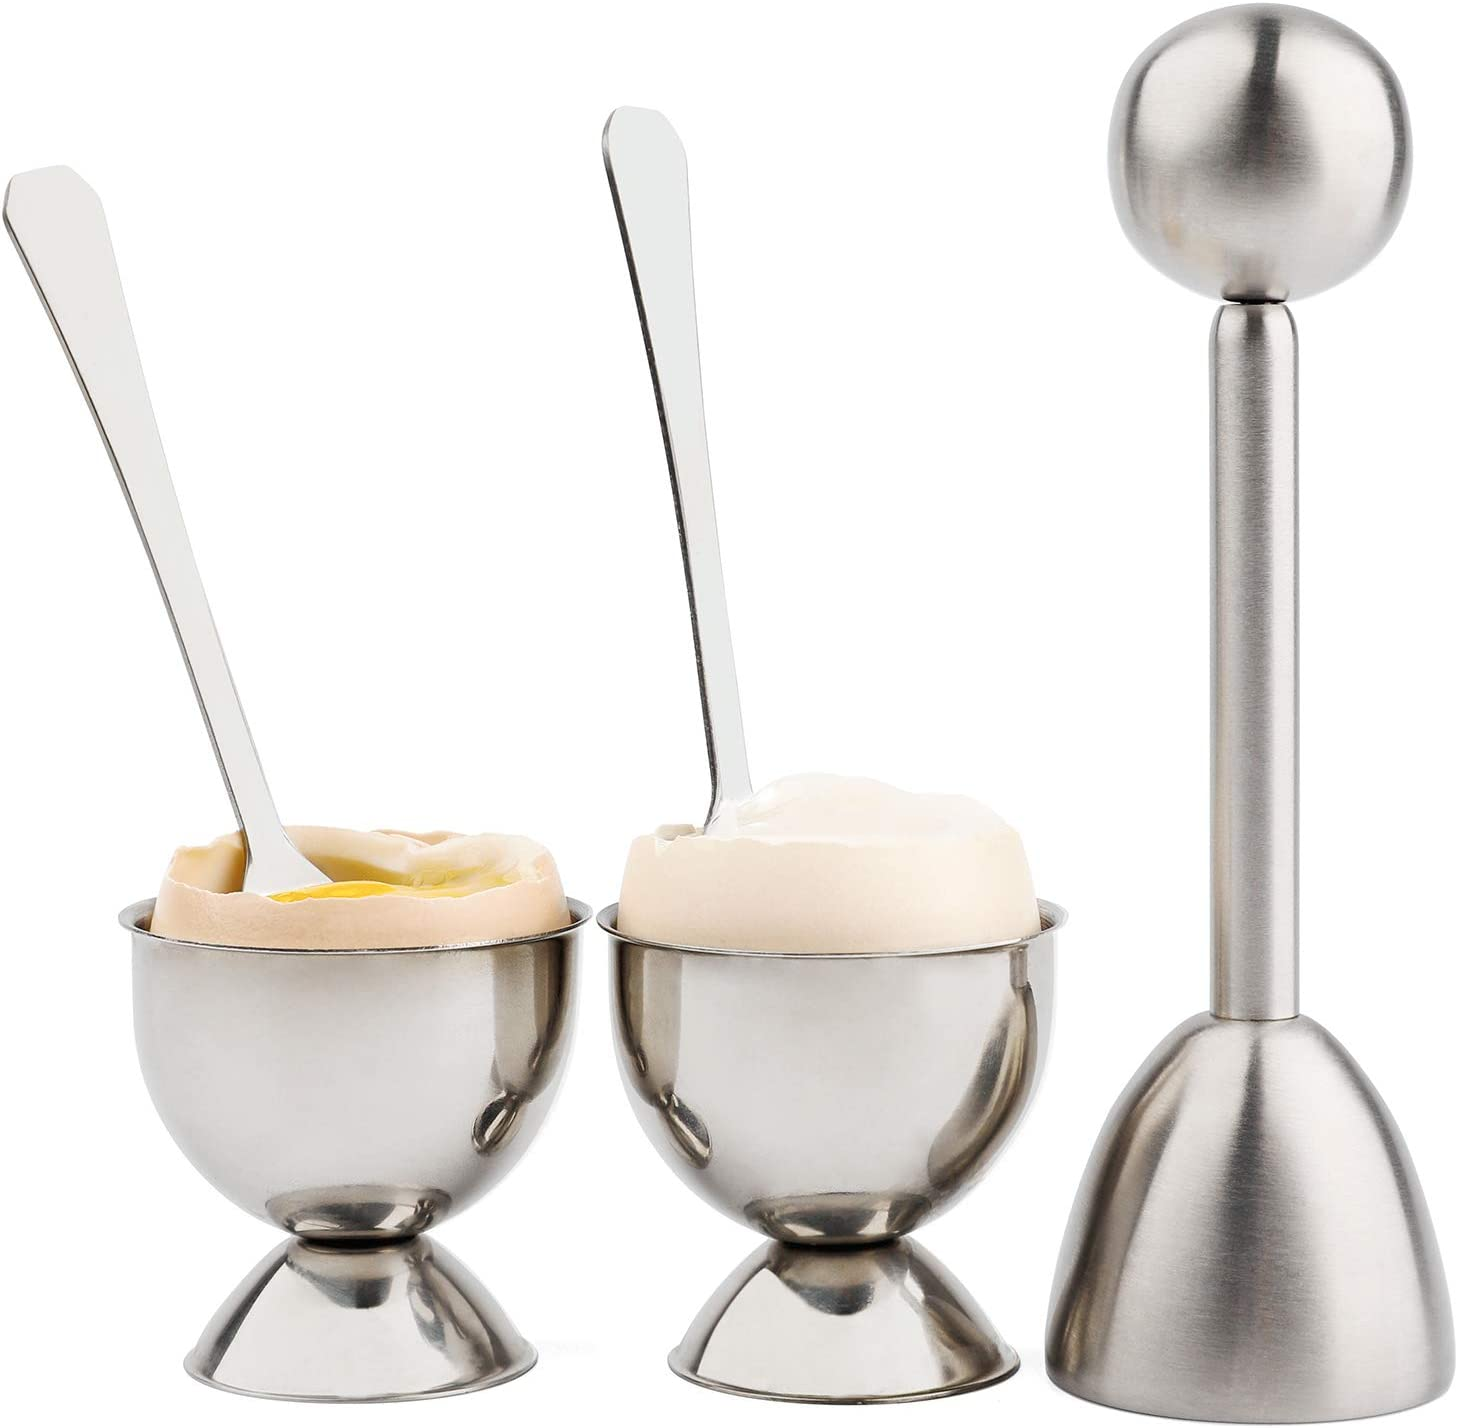 Soft Hard Boiled Egg Cutter Topper Set Egg Cracker with Include 2 Cup 2 Spoon 1 Topper Cutter Shell Separator Remover Stainless Steel Kitchen Tool